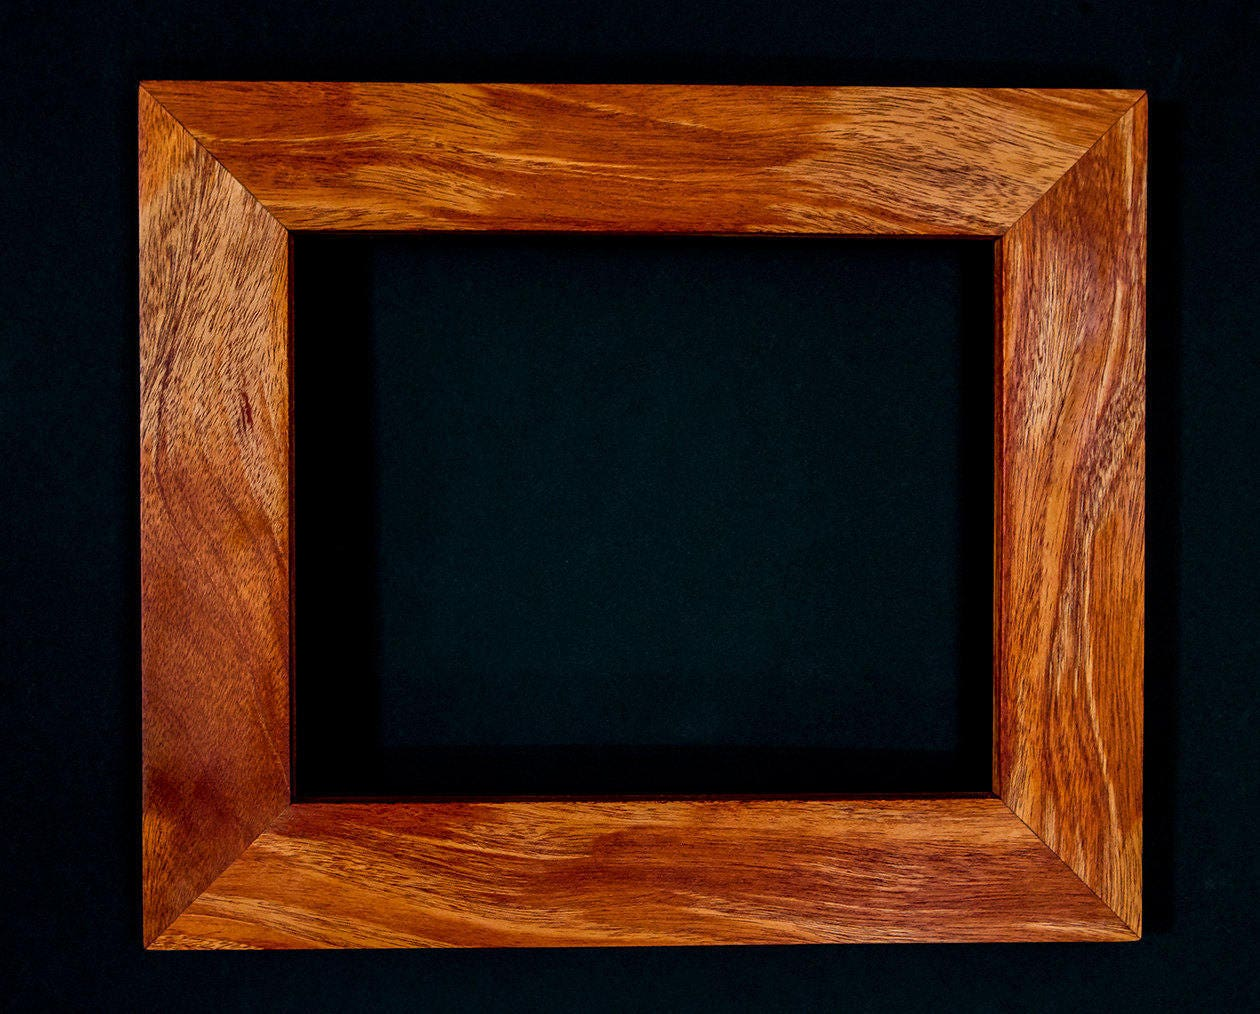 8x10 handcrafted exotic hardwood frames photo frames art frames sold by dovetailartistry jeuxipadfo Image collections